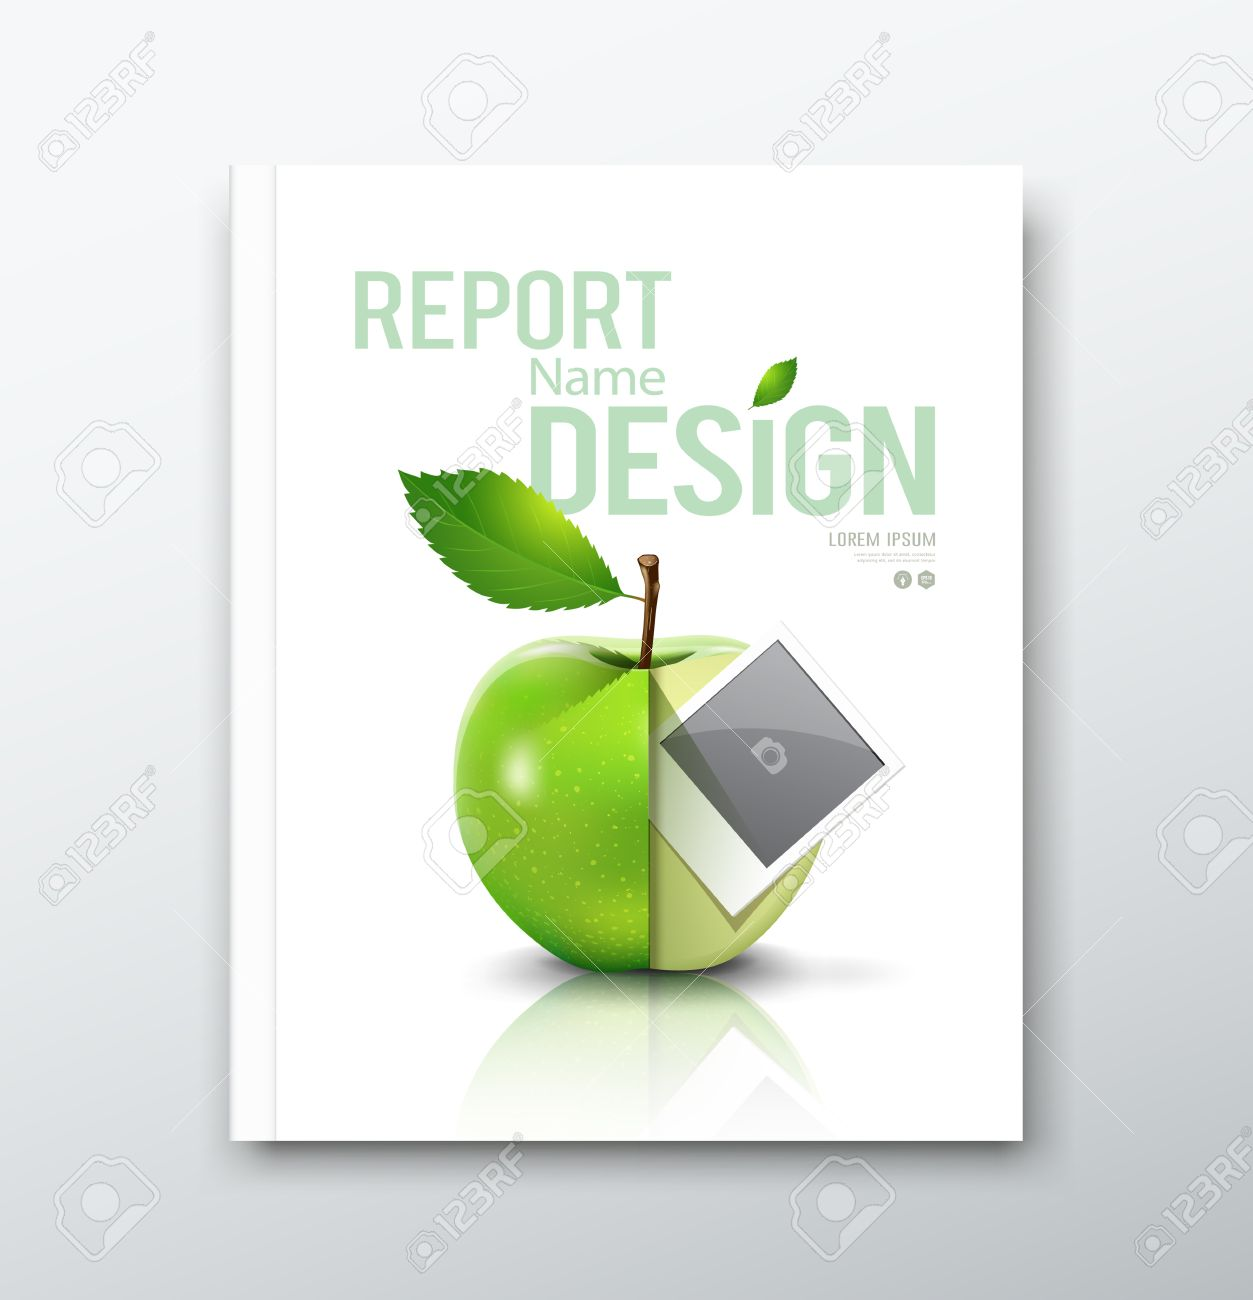 cover annual report green apple and instant photo design cover annual report green apple and instant photo design background stock vector 27853603